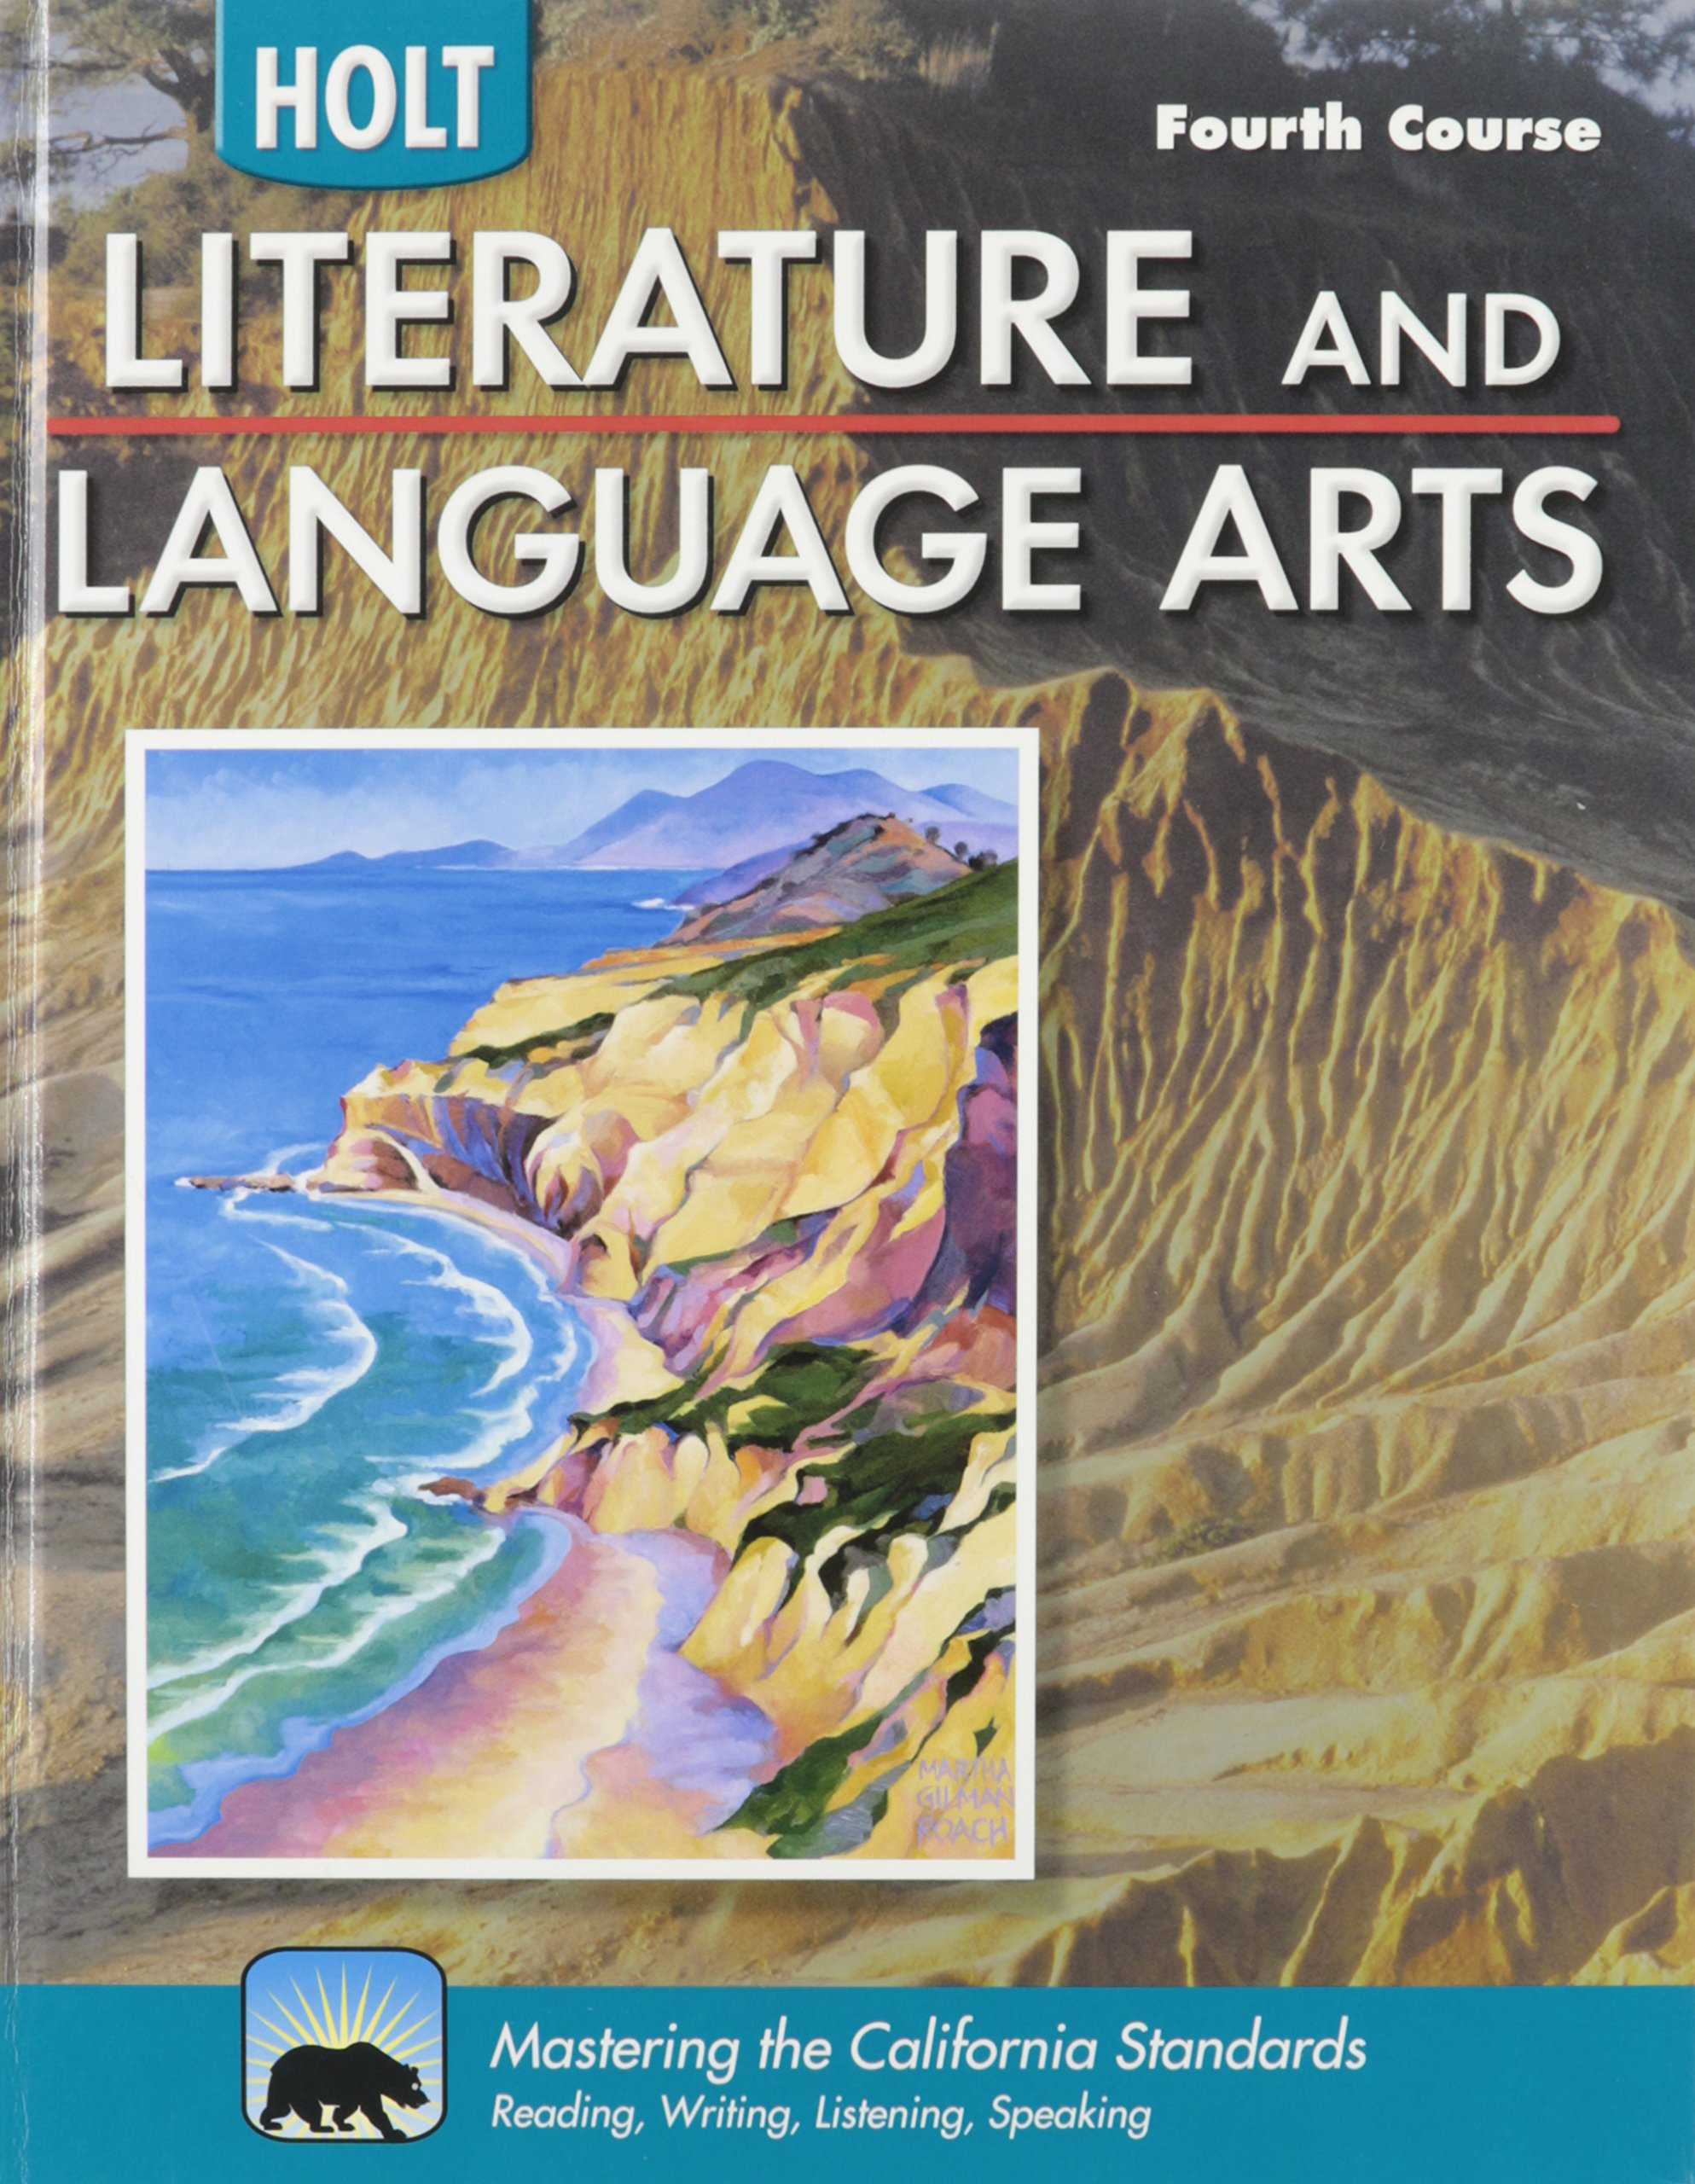 Holt Literature and Language Arts California: Student Edition Grade 10 2009 by HOLT, RINEHART AND WINSTON